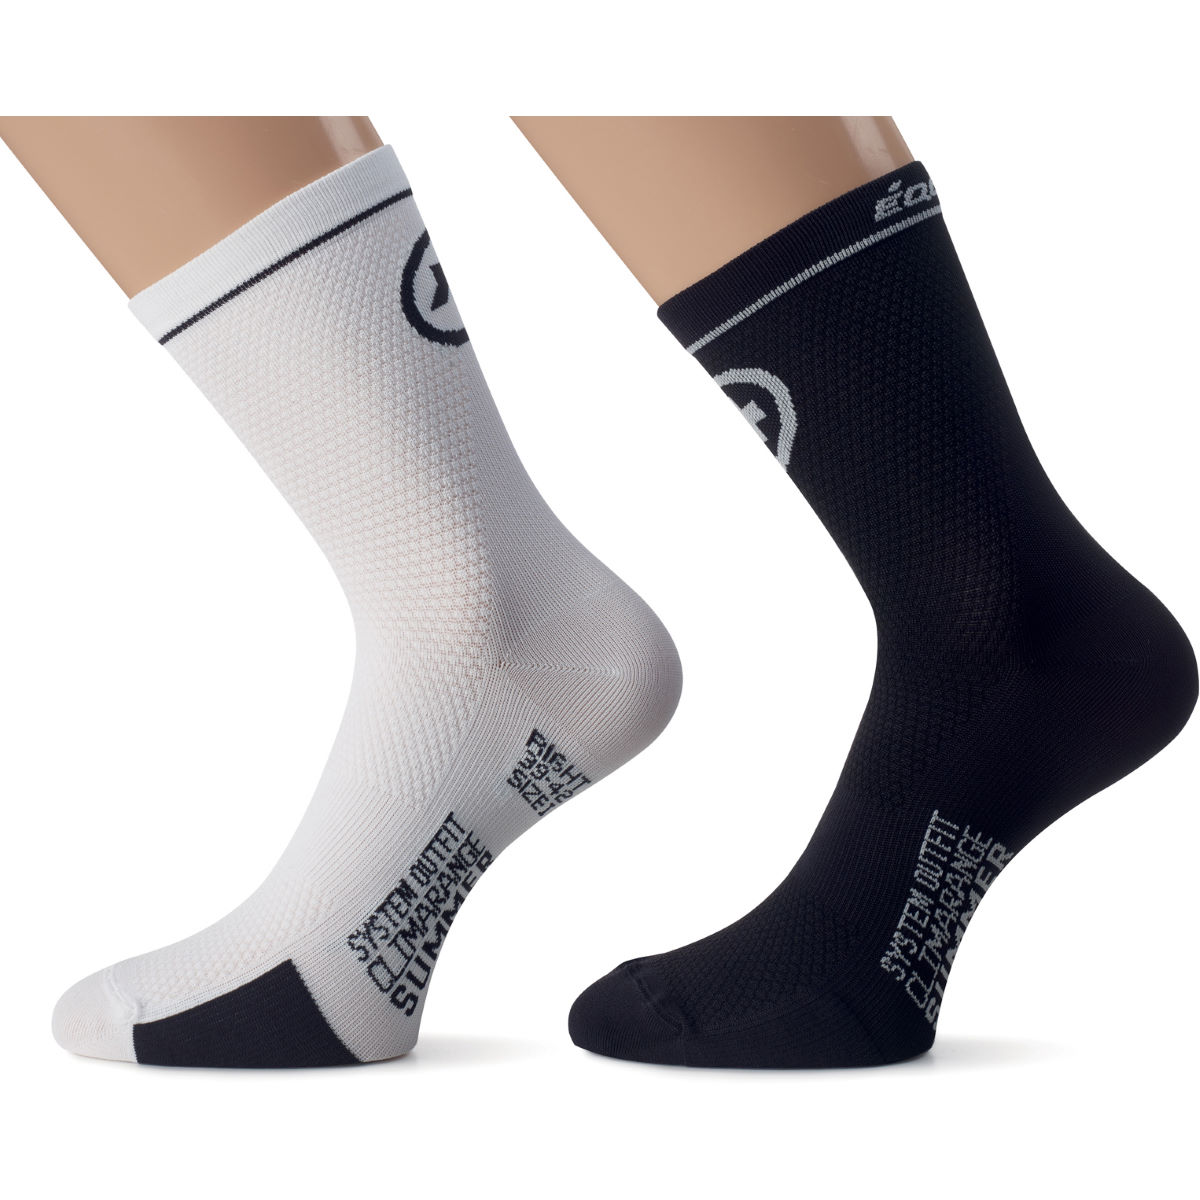 Chaussettes Assos équipeSocks_evo7 - 0 Holy White Chaussettes vélo